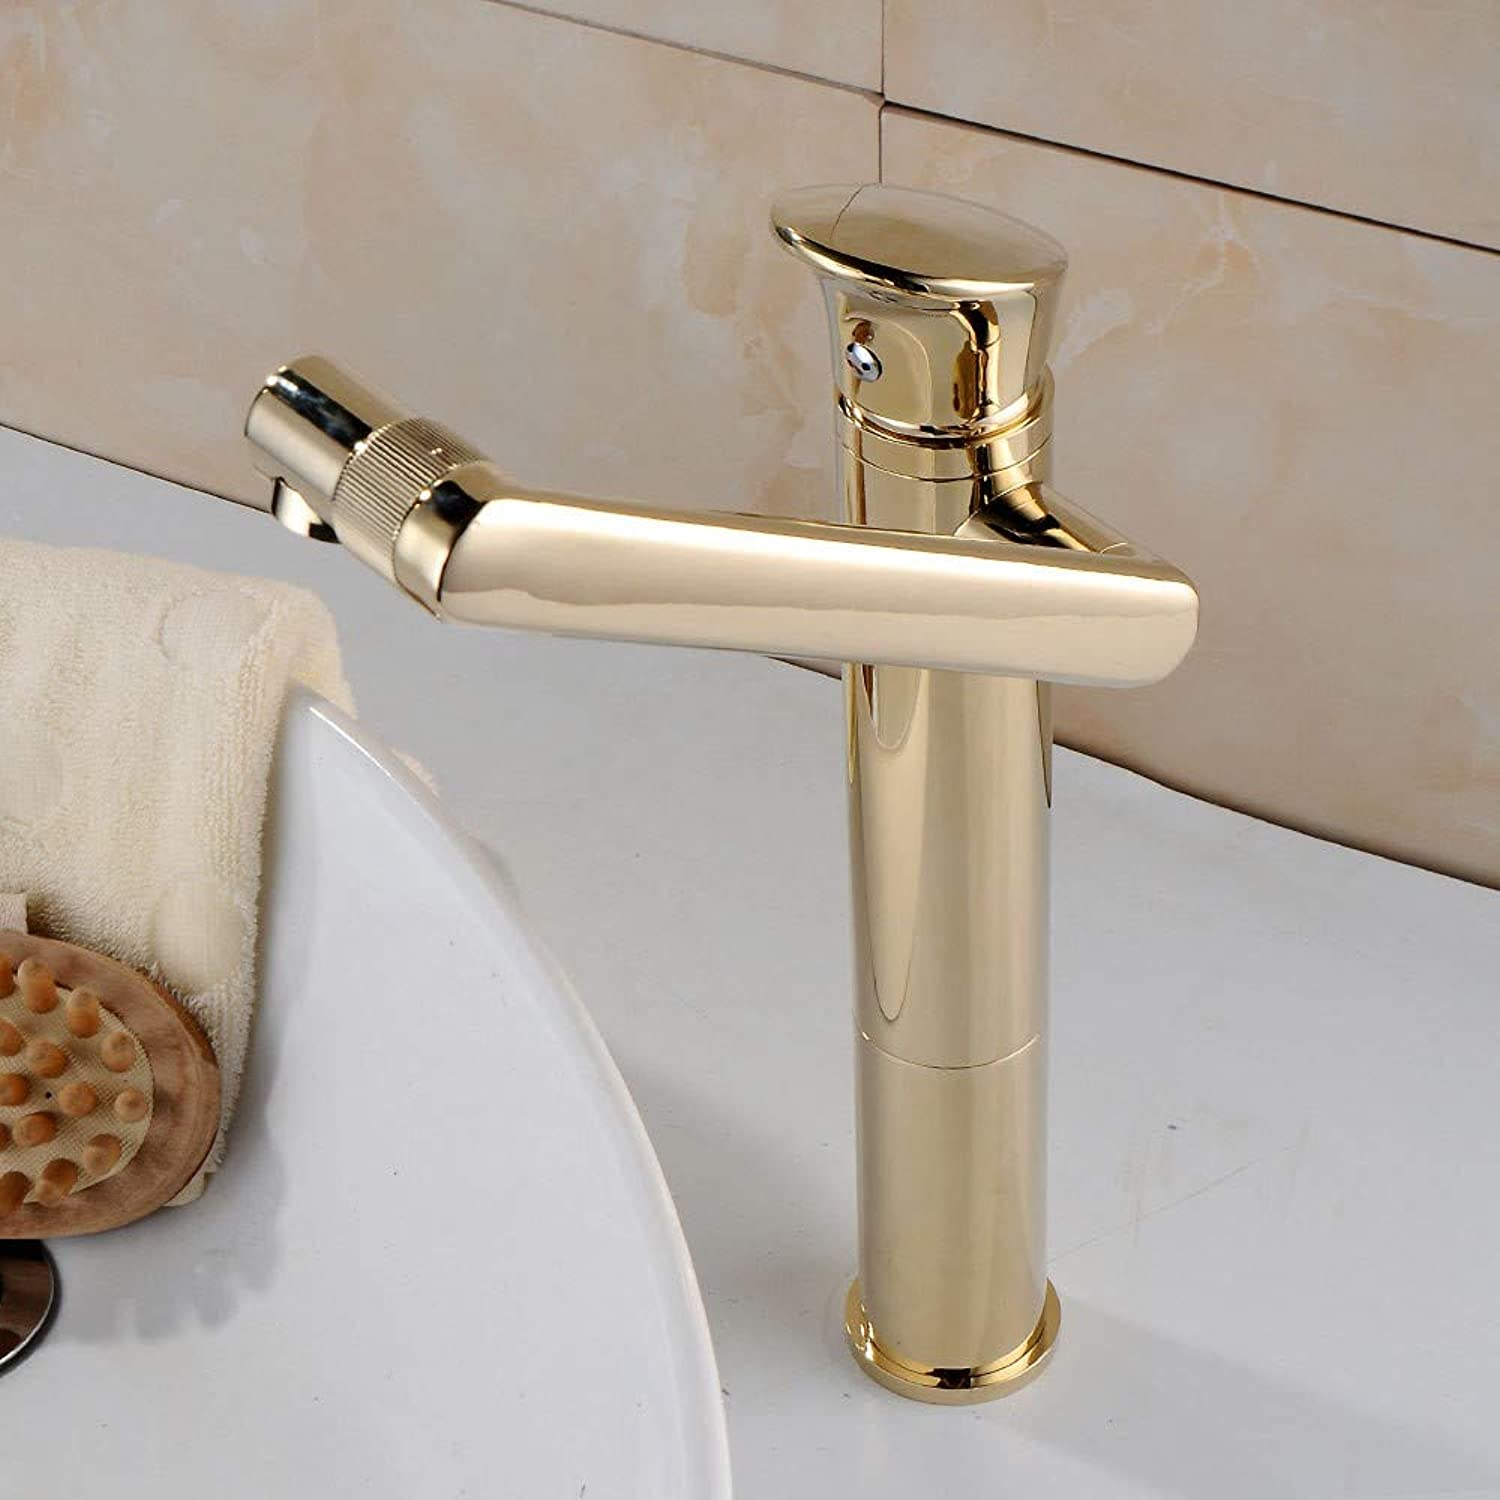 Rmckuva Bathroom Sink Taps Modern redary Spout Basin Basin Faucet gold Mirror Effect Brass Bathroom Mixer